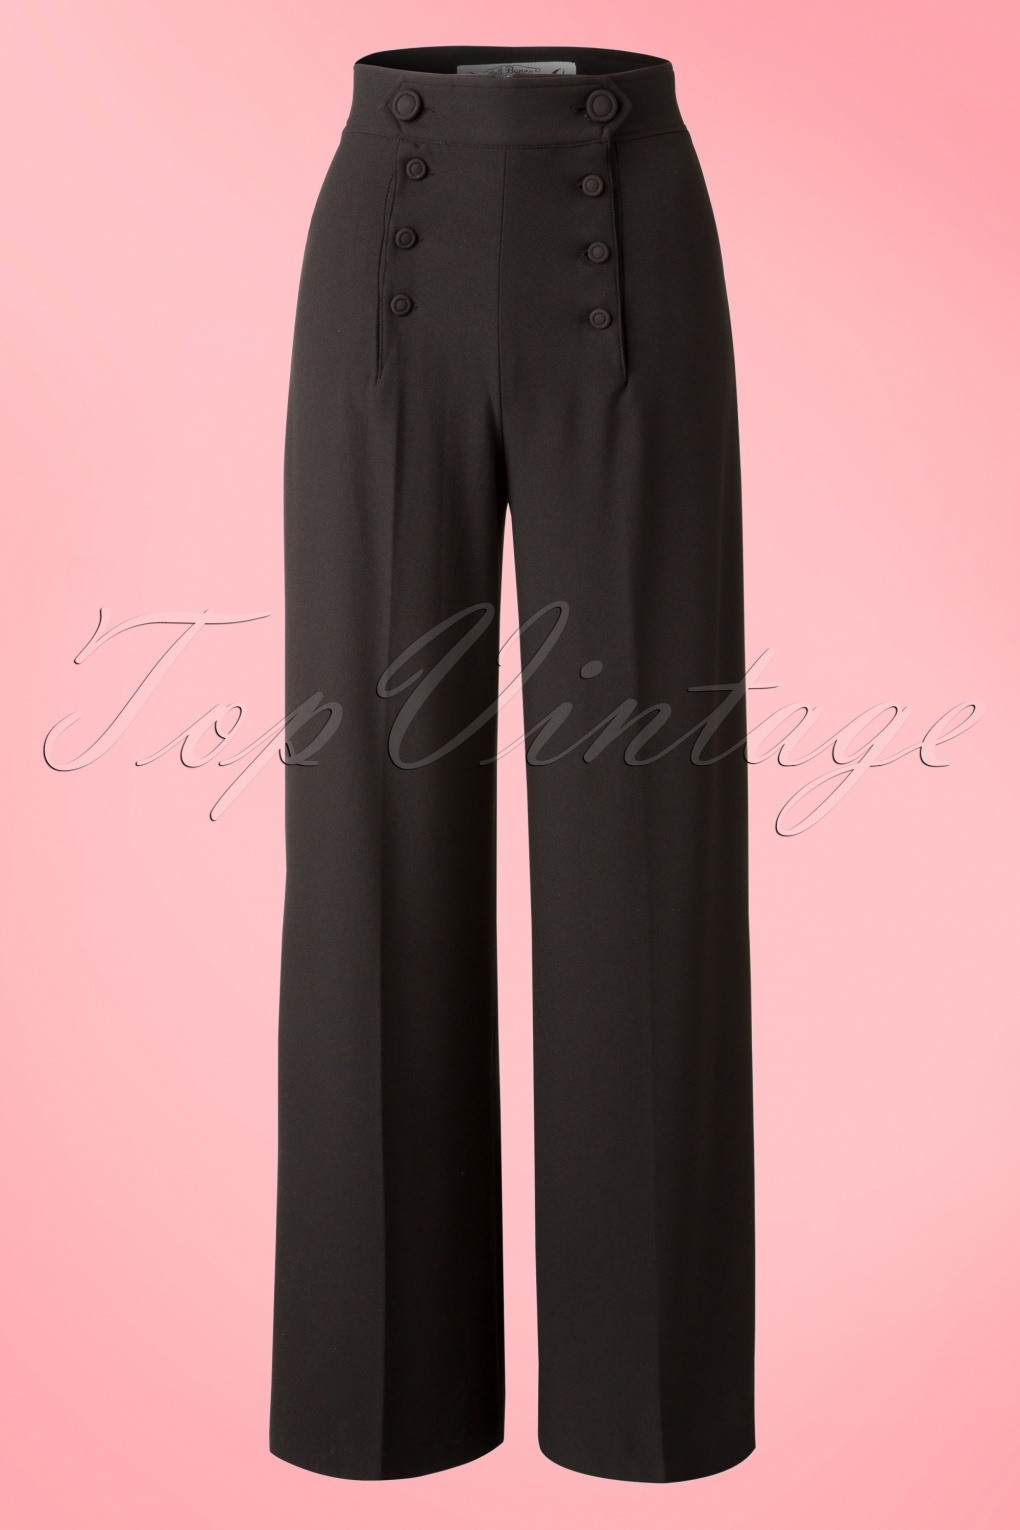 1940s Style Pants & Overalls- Wide Leg, High Waist 40s Nelly Bly Classy Trousers in Black £40.28 AT vintagedancer.com